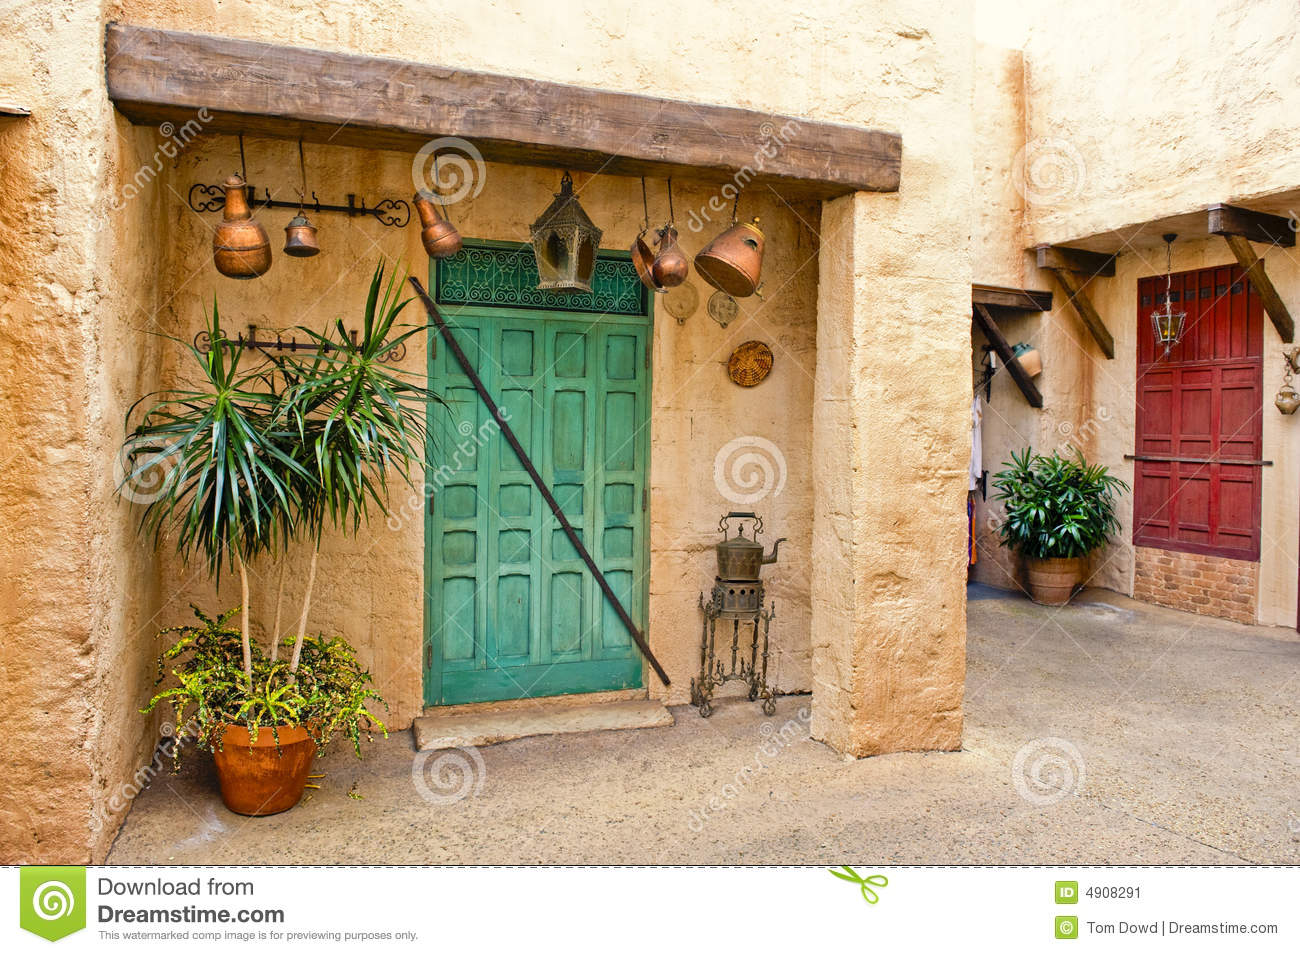 moroccan home and courtyard stock image - image: 4908291